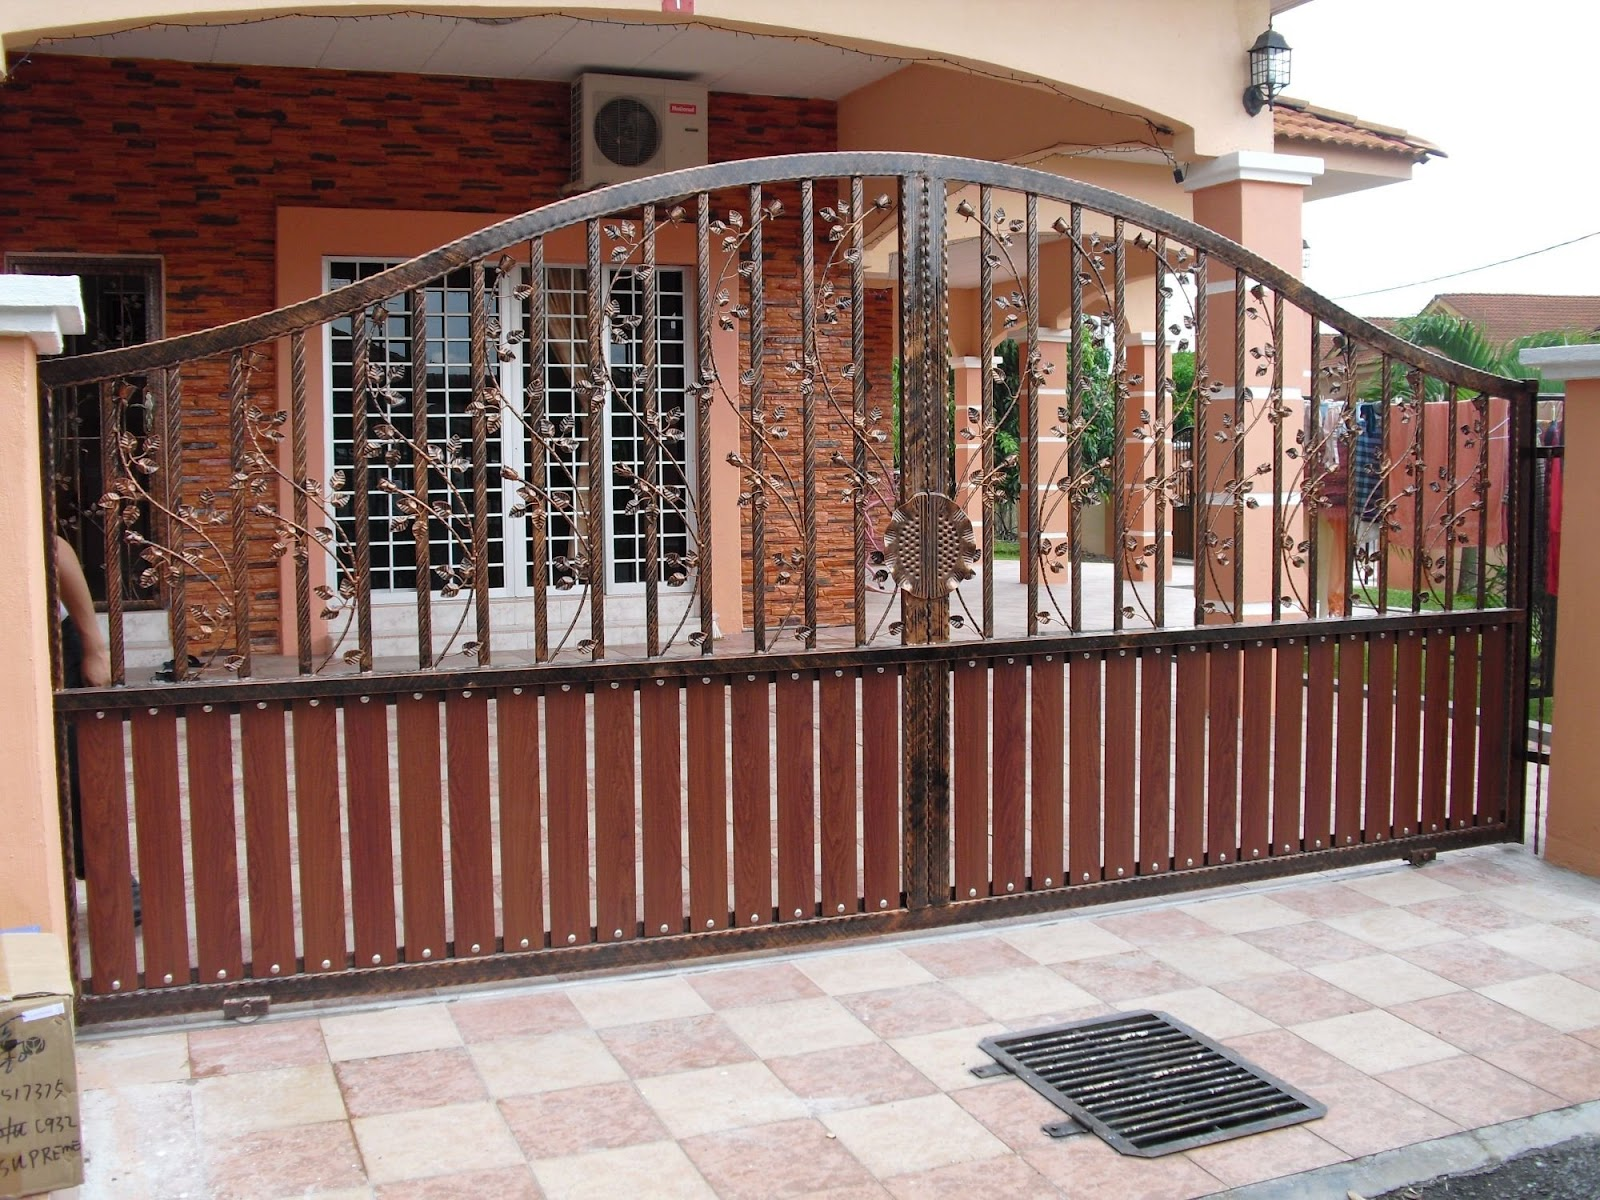 Brown Stained Iron Main Gate For Home With Vertical Wood Planks In The  Bottom